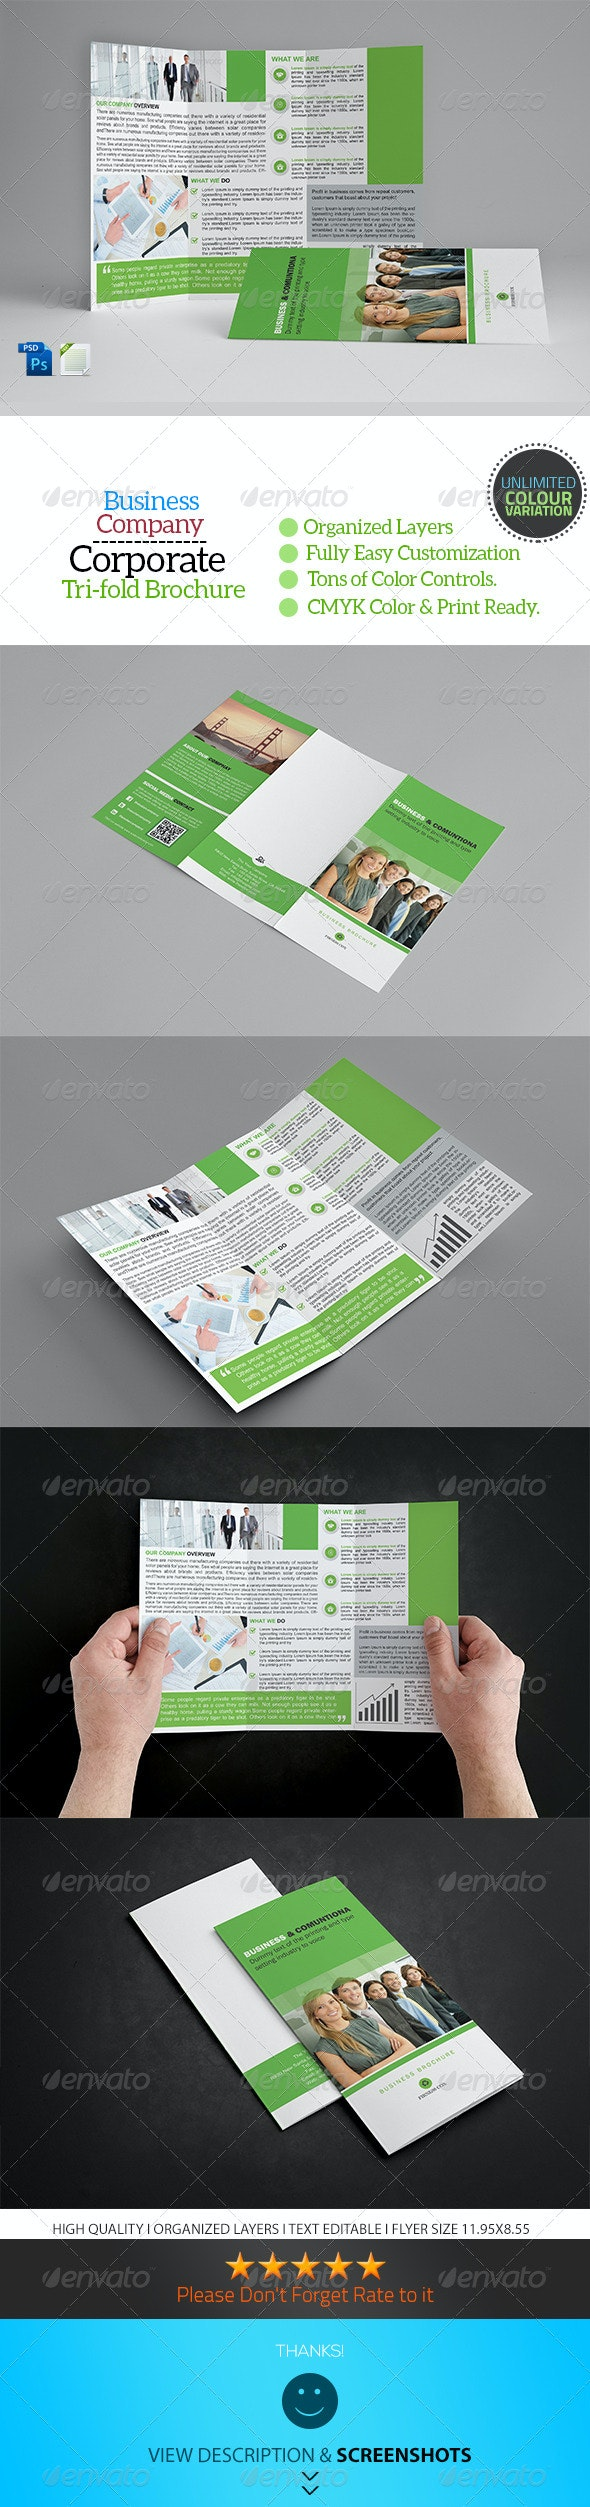 A4 Trifold Business Brochure Template Vol13 - Corporate Brochures